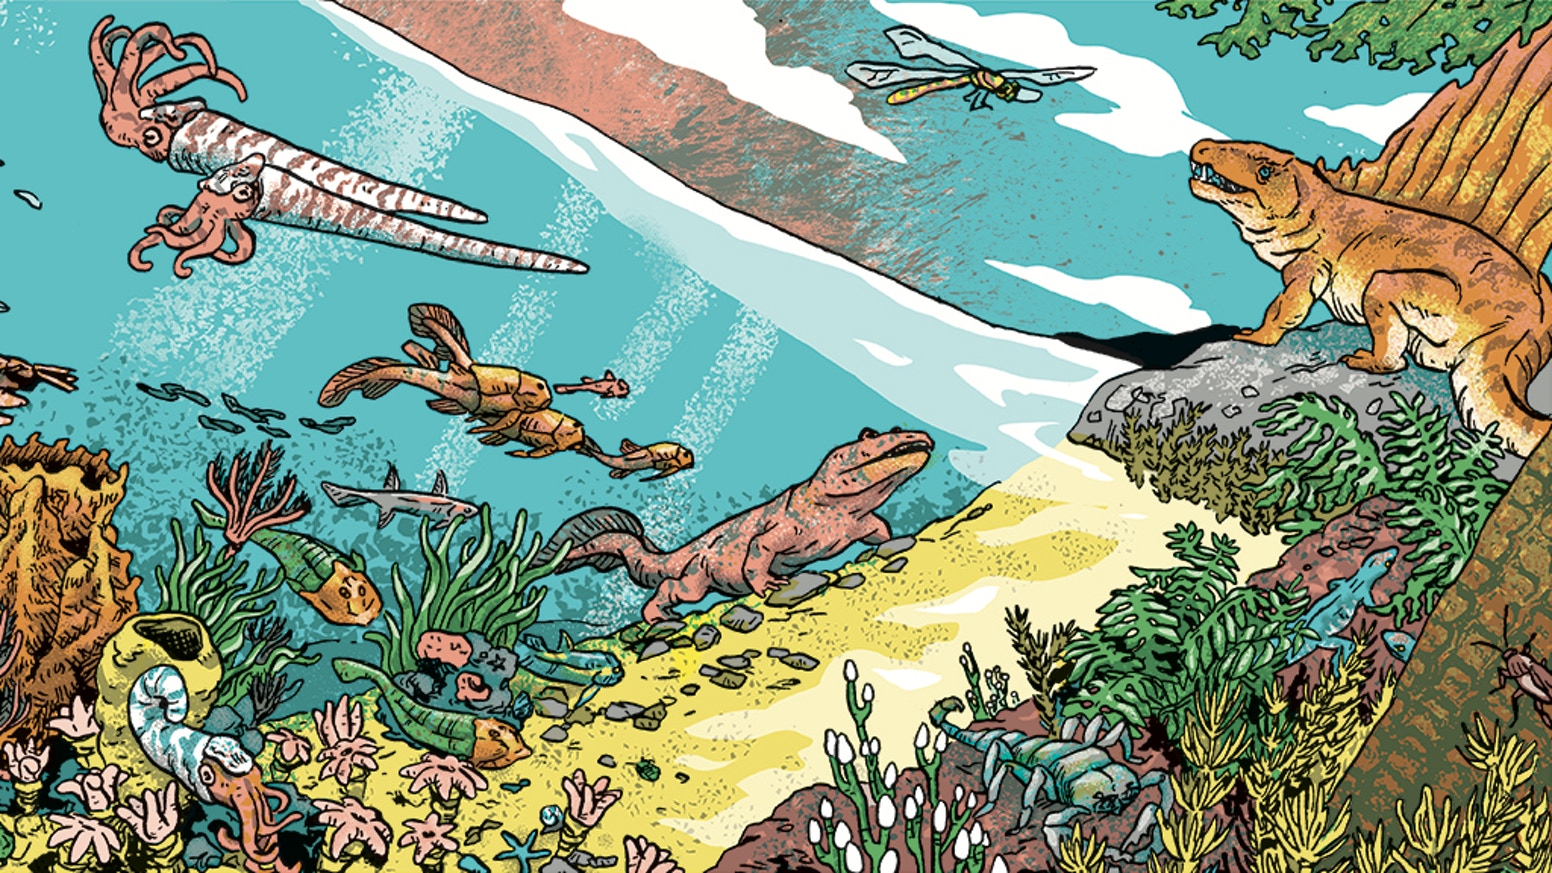 Five accordion books covering 280 million years of prehistoric life, that together, create one continuous image 45 ft long.